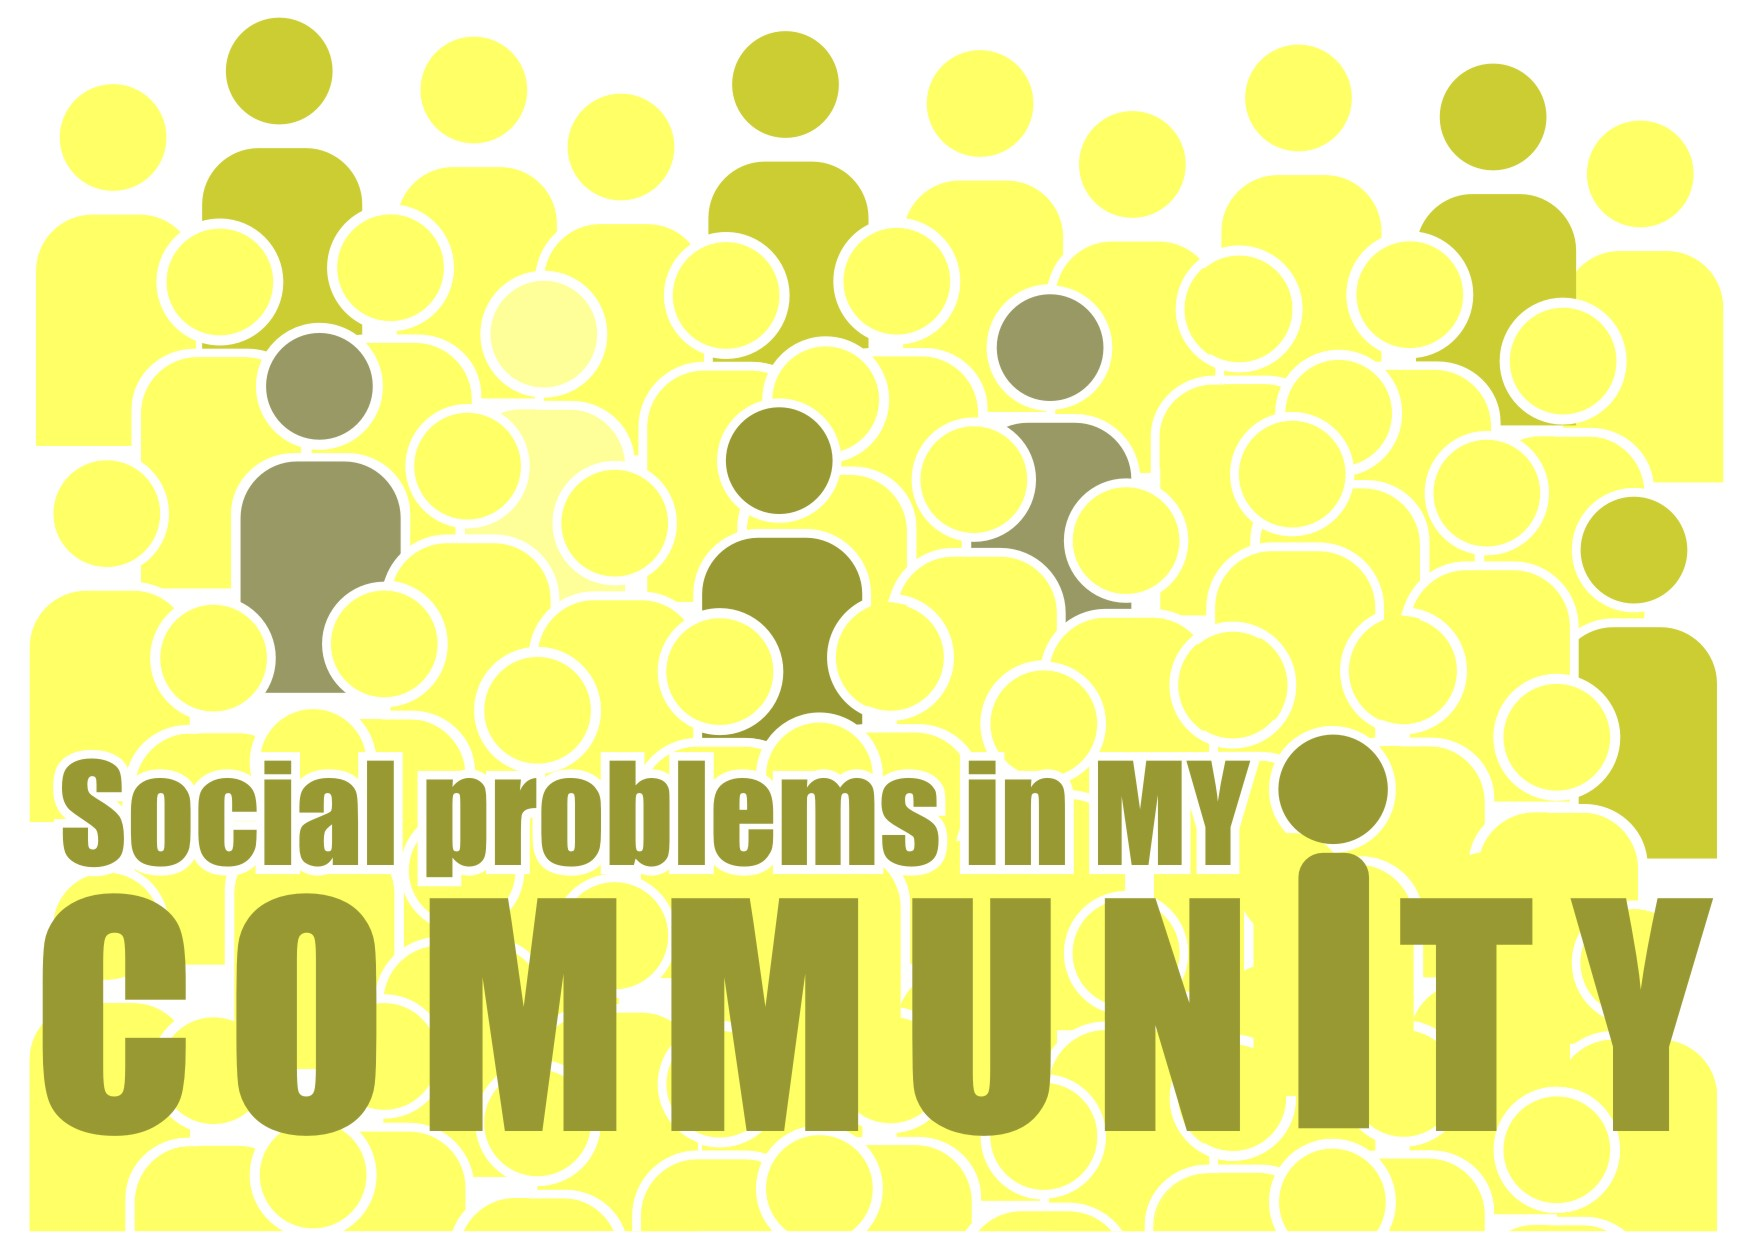 Social problems in my community